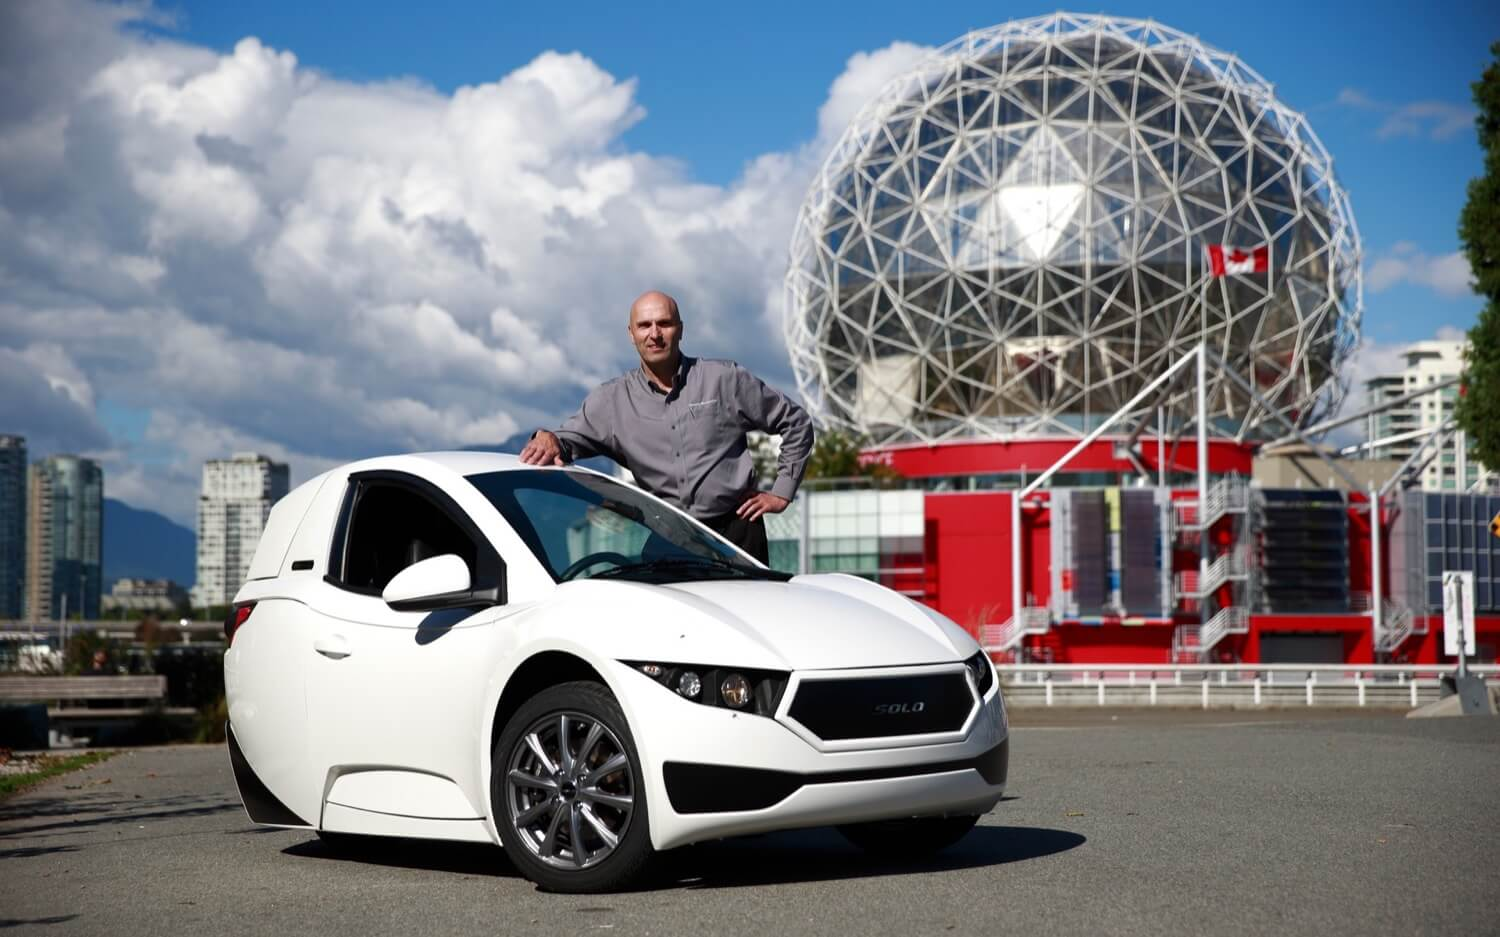 Three-wheeled electric car from Canada shocking their first owners